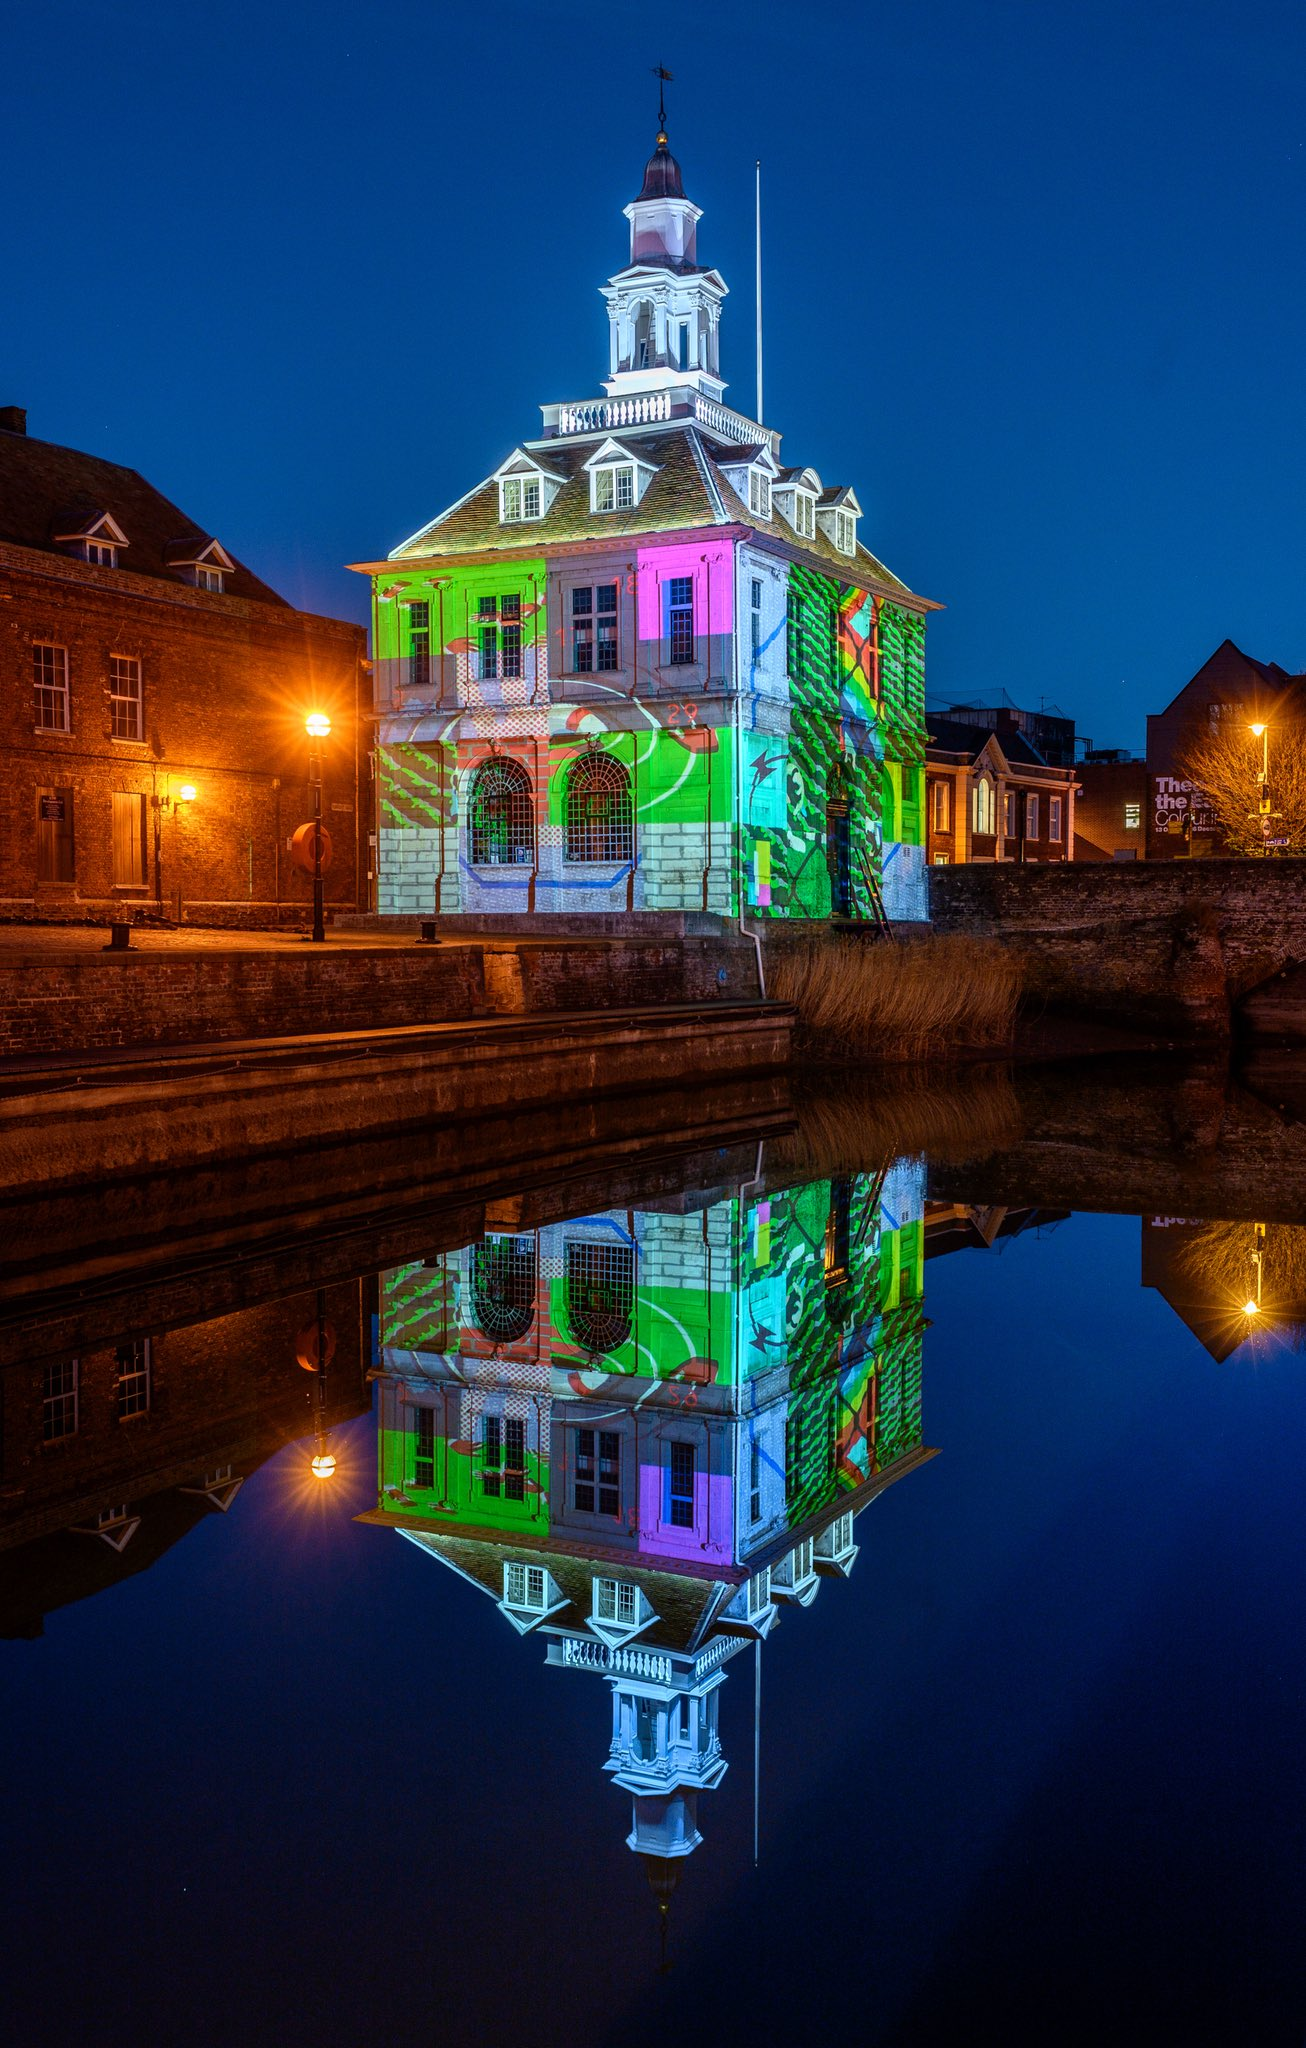 The Custom House  by Joe Magee, December 2018  The Custom House is an artwork by Joe Magee. It was commissioned by Cambridge-based arts organisation  Collusion  to form part of their  Reveal  project - a series of artworks and performances in Kings Lynn (England).  The large scale projection onto the 17th Century harbourside building sees fragmented images randomly altering. Visitors can interact using their smart phones to change and resolve the images so that the building becomes like a giant Rubik's Cube.  Joe's images explore the themes of Reveal - soul searching about migration, borders and brexit in the English heartlands. The interactivity and coding for the artwork was developed by cutting edge digital programmer  Pi & Mash .  Digital coding: Pete Cleary @ Pi & Mash. Produced by Marcus Romer and Simon Poulter. Executive Producers: Simon Poulter, Rachel Drury. Creative technologist: Richard Hall. REVEAL has been developed by the Borough Council of West Norfolk and King's Lynn working with Collusion. Additionally, the project has been funded by Arts Council England, Norfolk County Council, Discover King's Lynn and The Business Board. PHOTO CREDIT: Matthew Usher